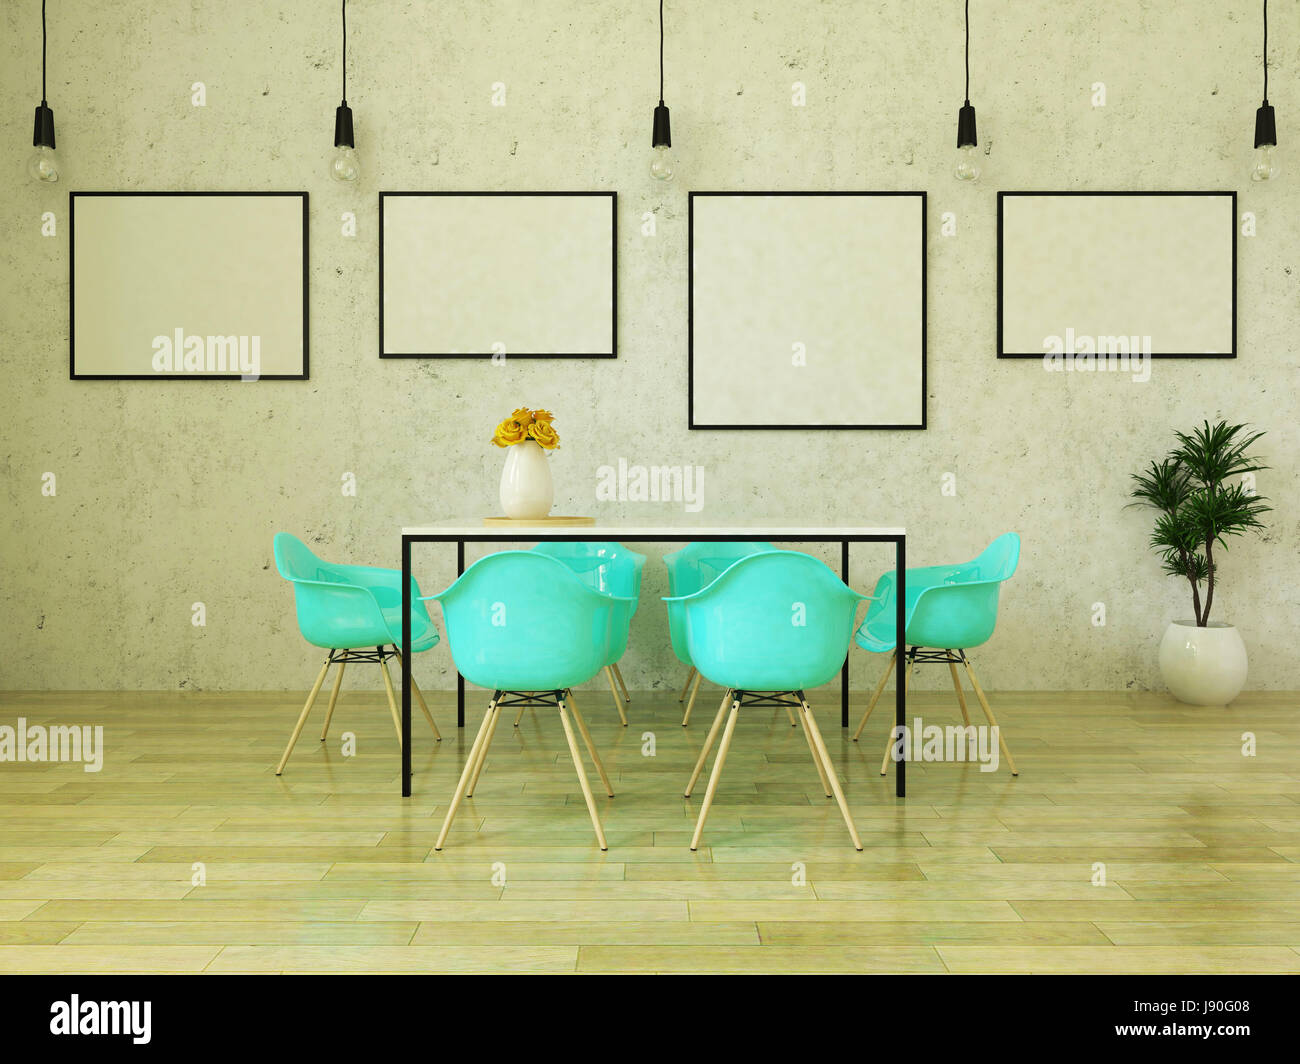 Beautiful dining table with turquoise chairs on wooden floor in front of a concrete wall with picture frames and Stock Photo